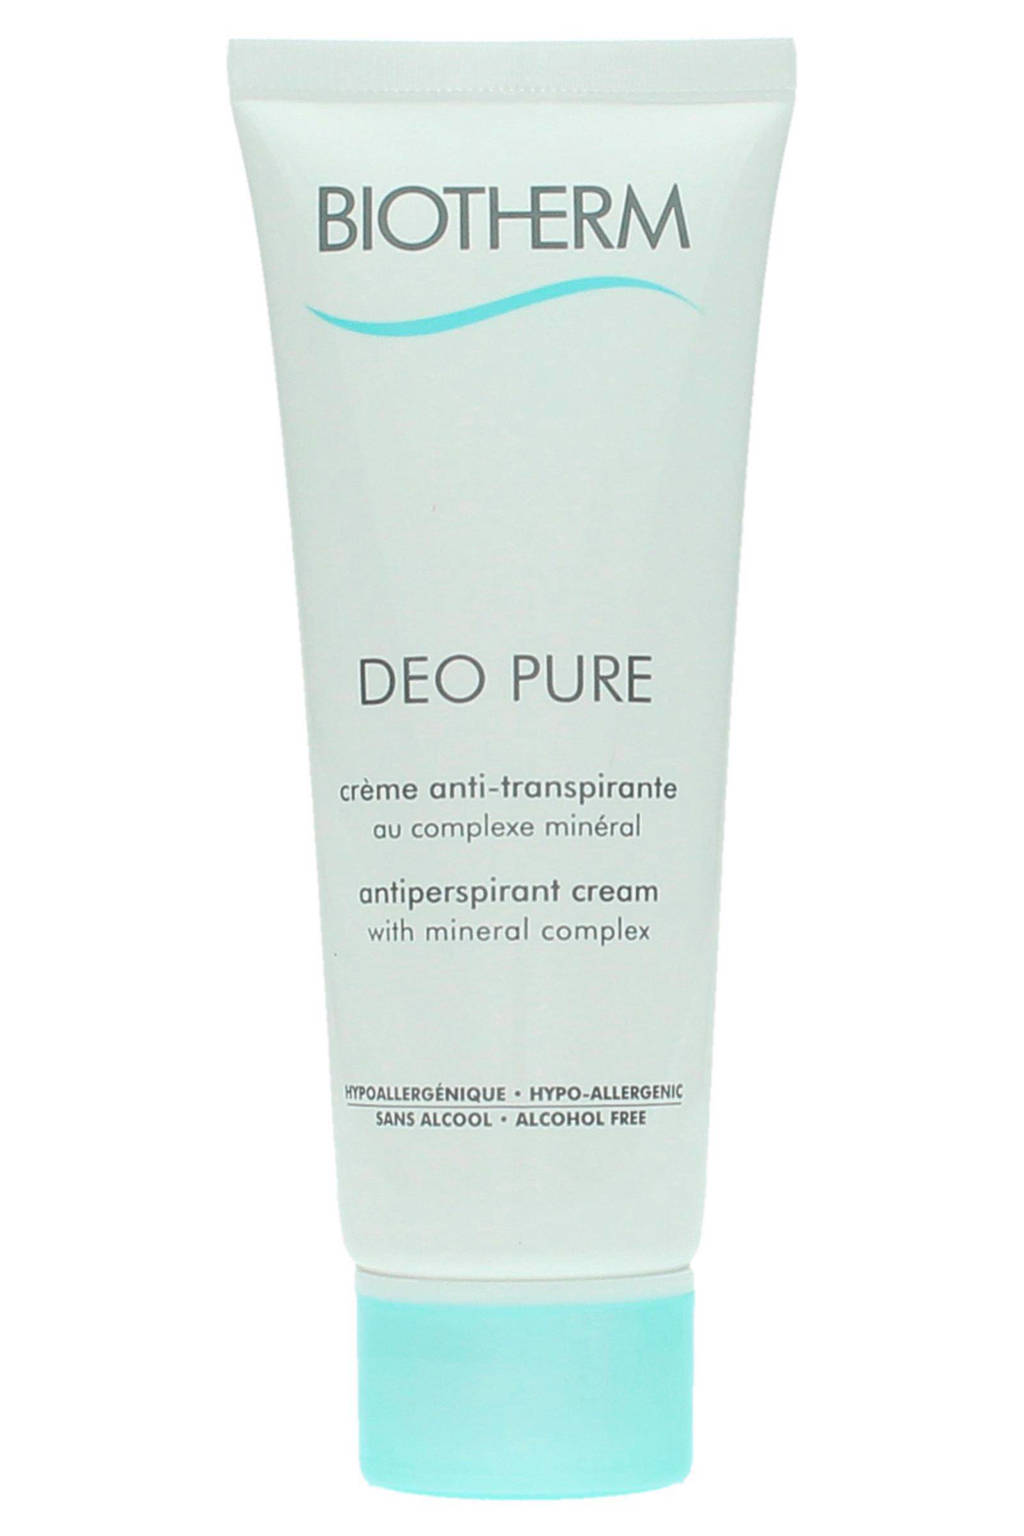 Biotherm Deo Pure Creme - 75 ml